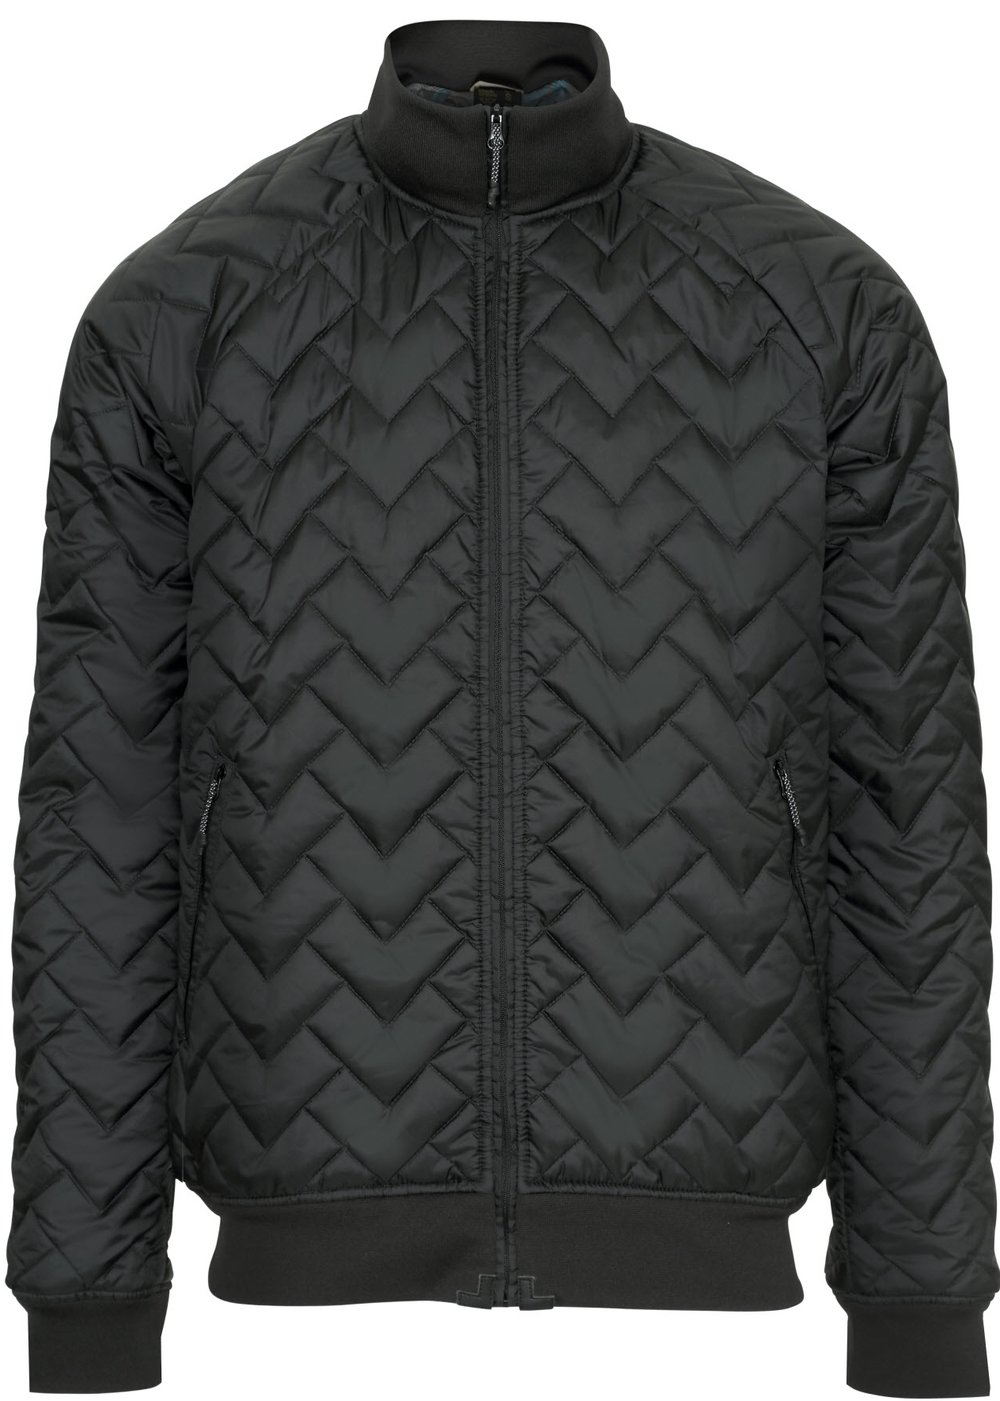 black crows Corpus Bomber Jacket, $279.95